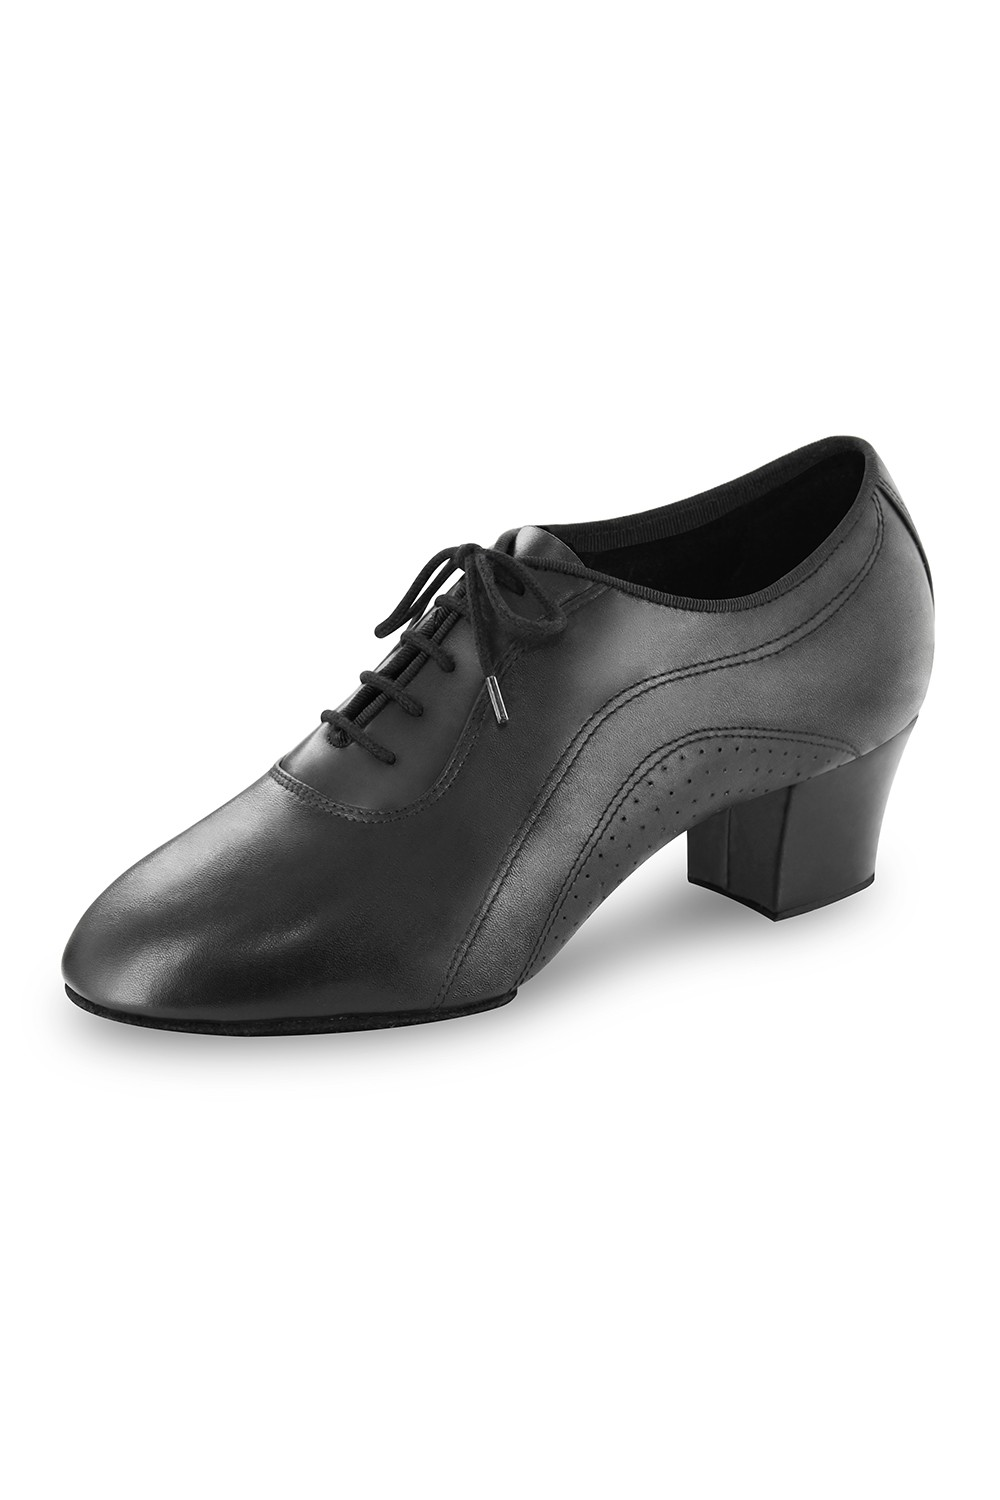 Mens Tap Shoes Discount Dance